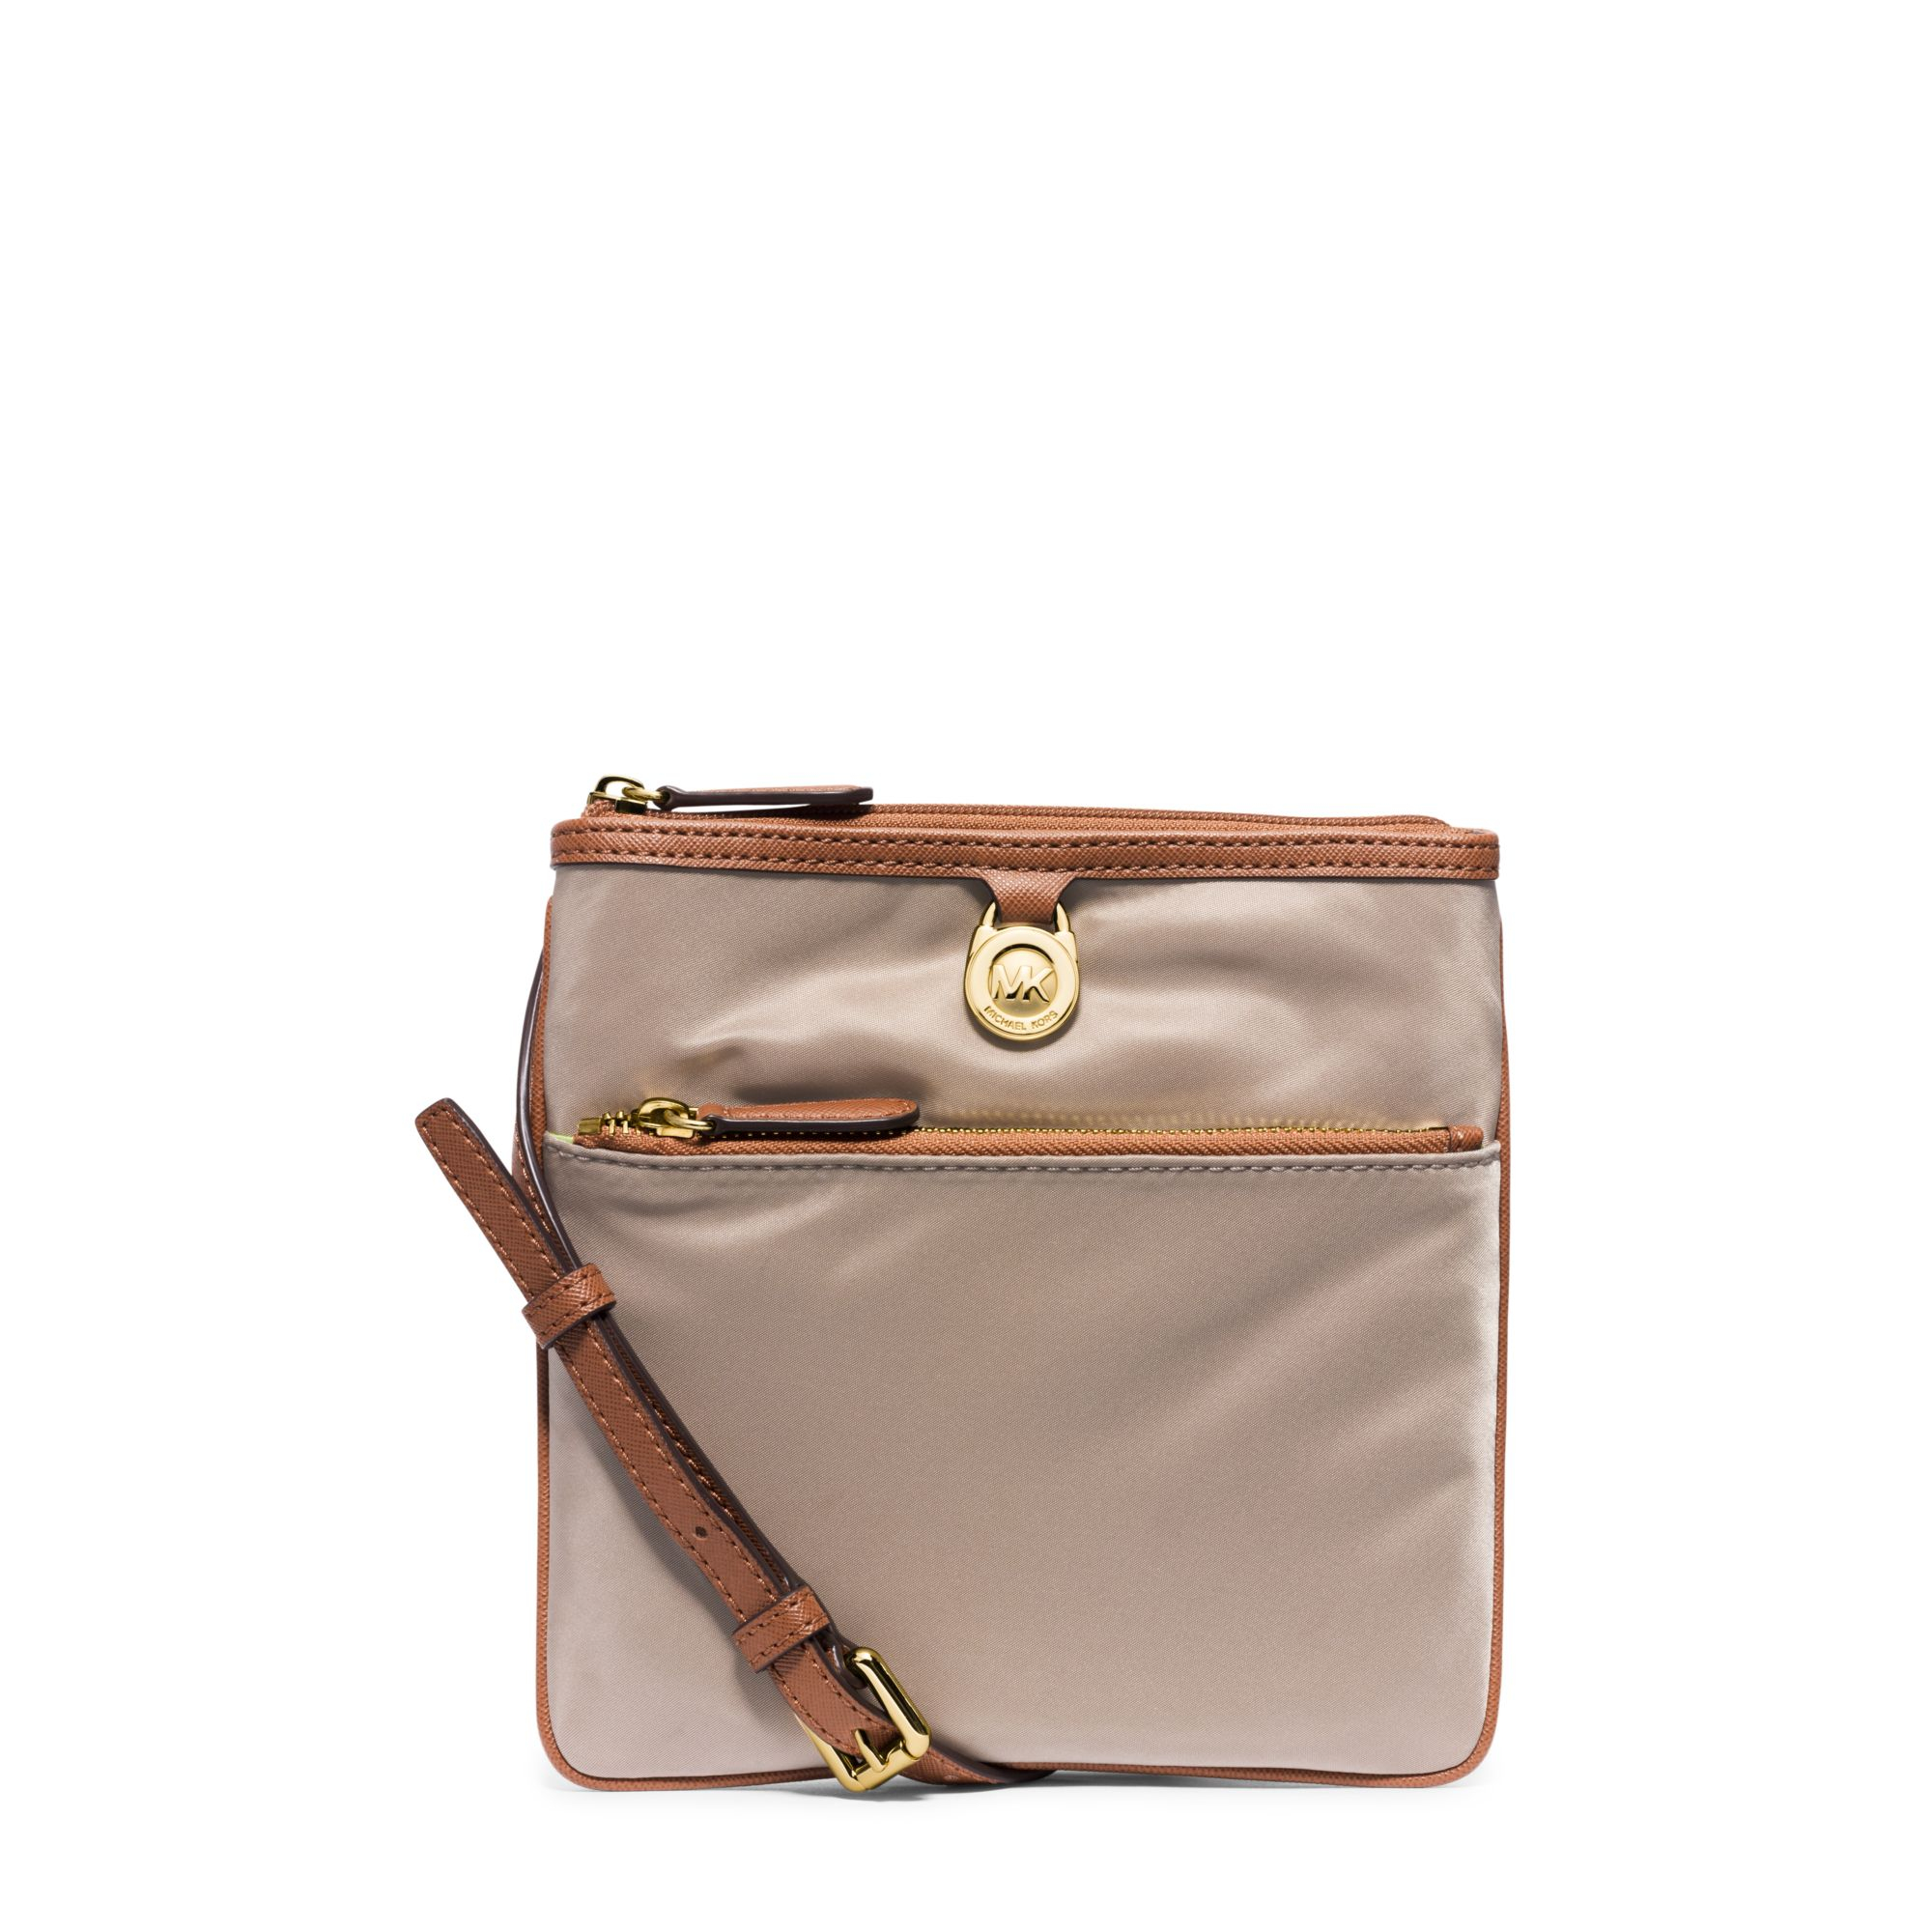 79155aadbf5c michael kors kempton small nylon crossbody